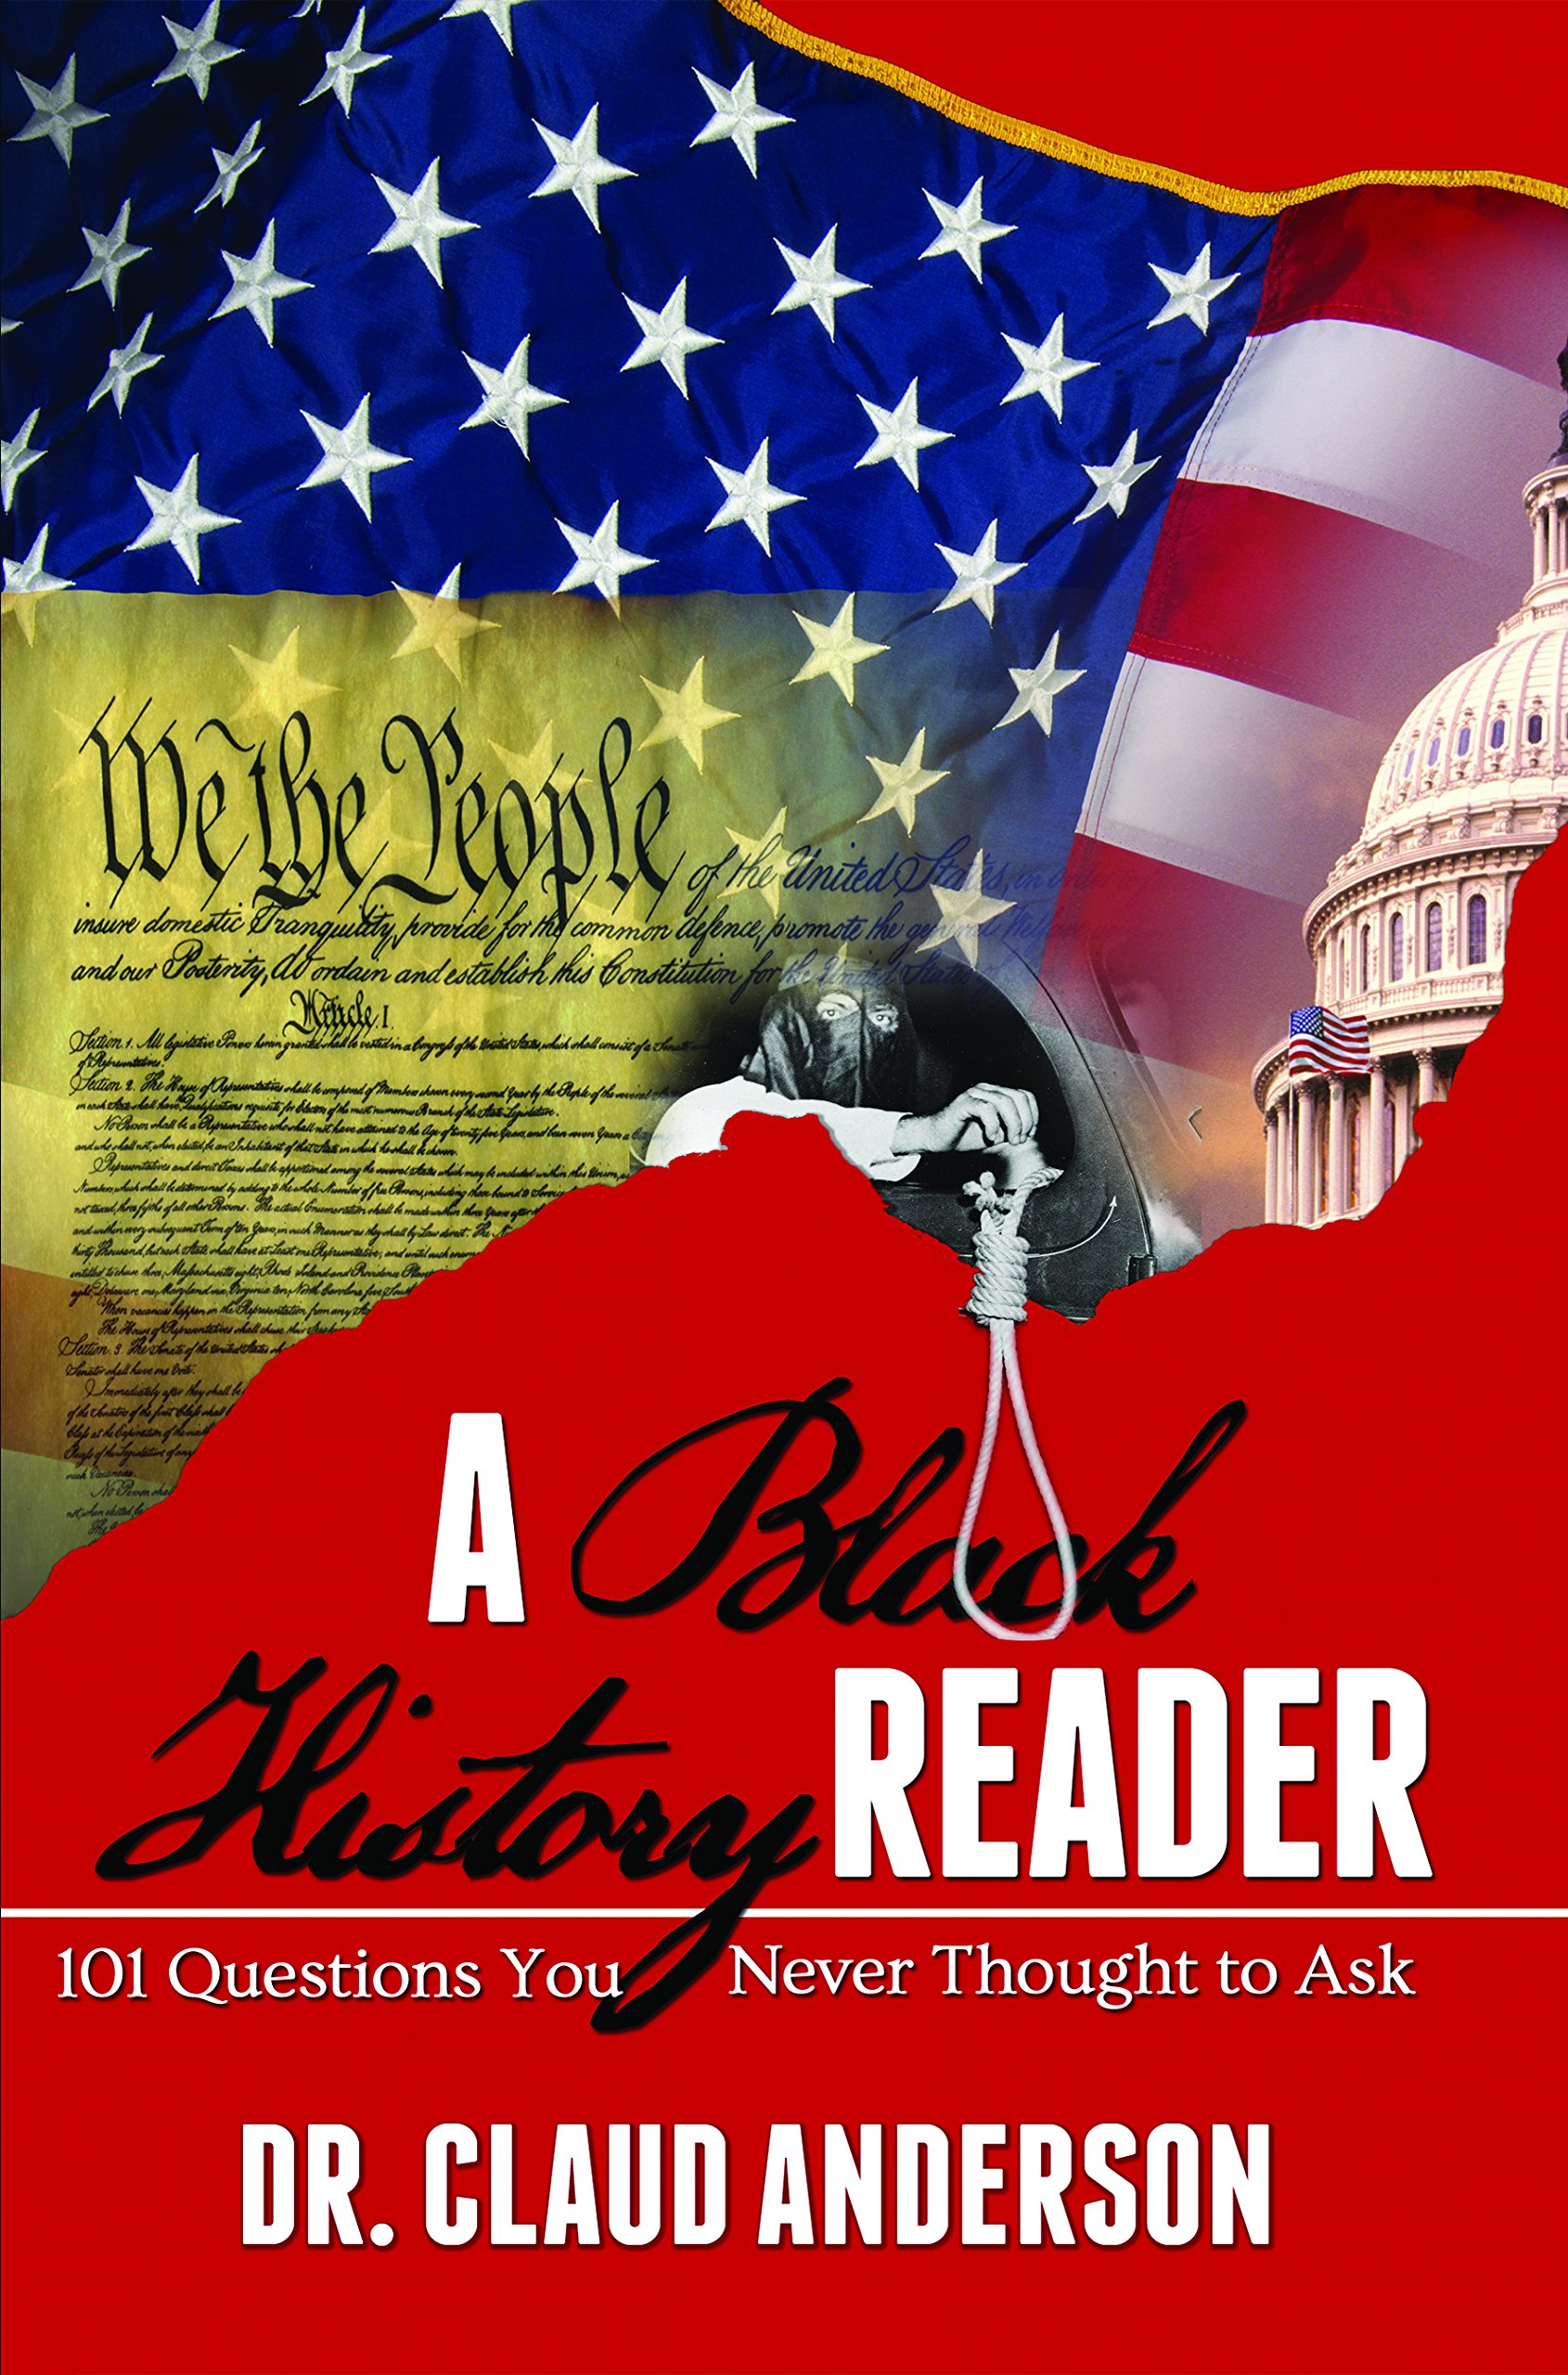 A Black History Reader: 101 Question You Never Thought to Ask: Dr. Claud  Anderson: 9780966170276: Amazon.com: Books